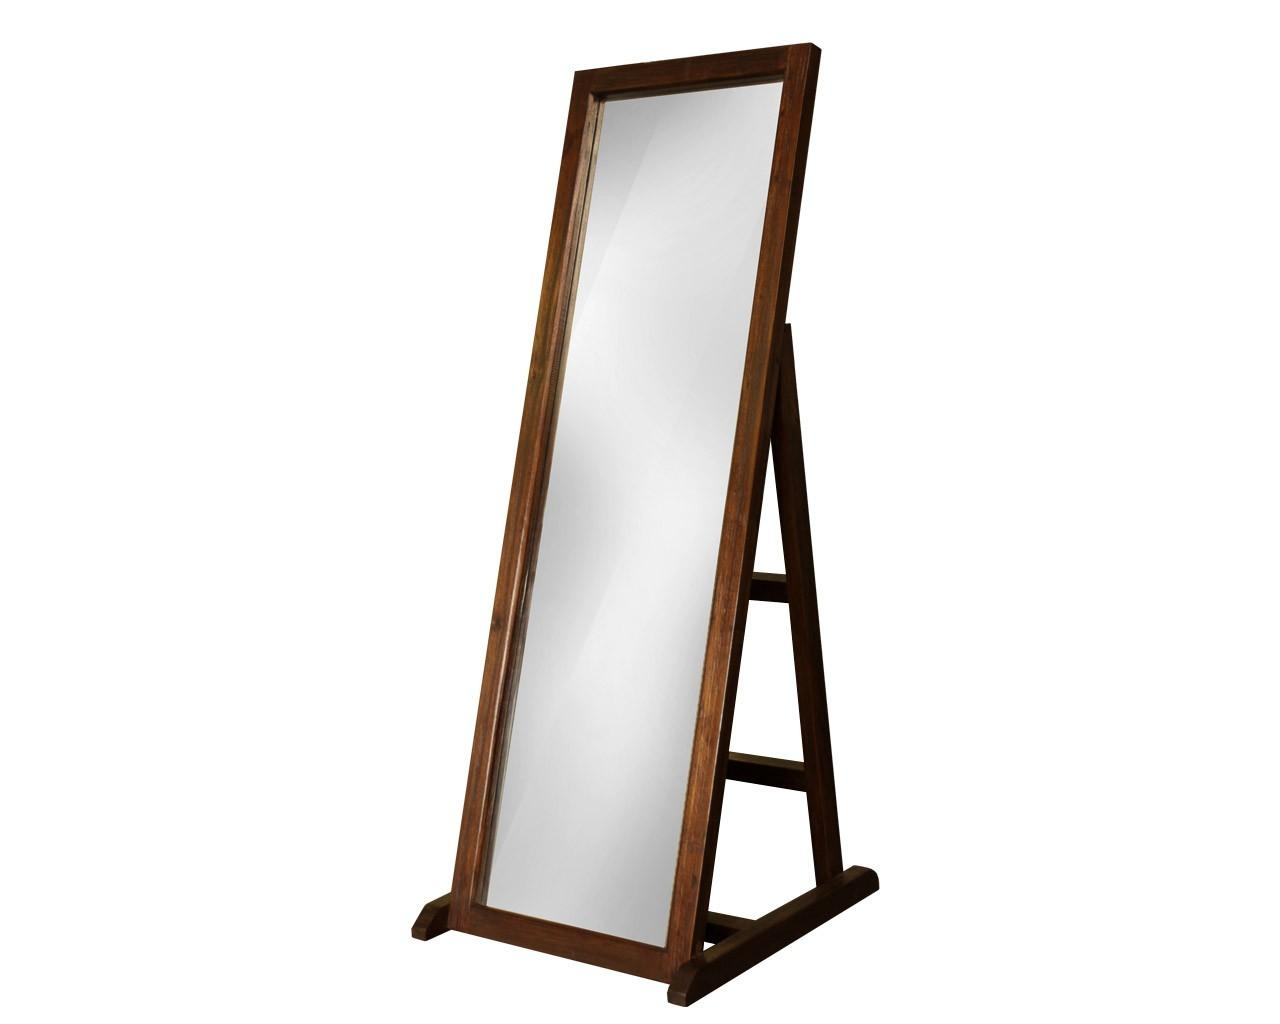 Cheval Mirror Frame – Decorative Cheval Mirrors For Your Home In Cheval Mirror (Image 7 of 20)